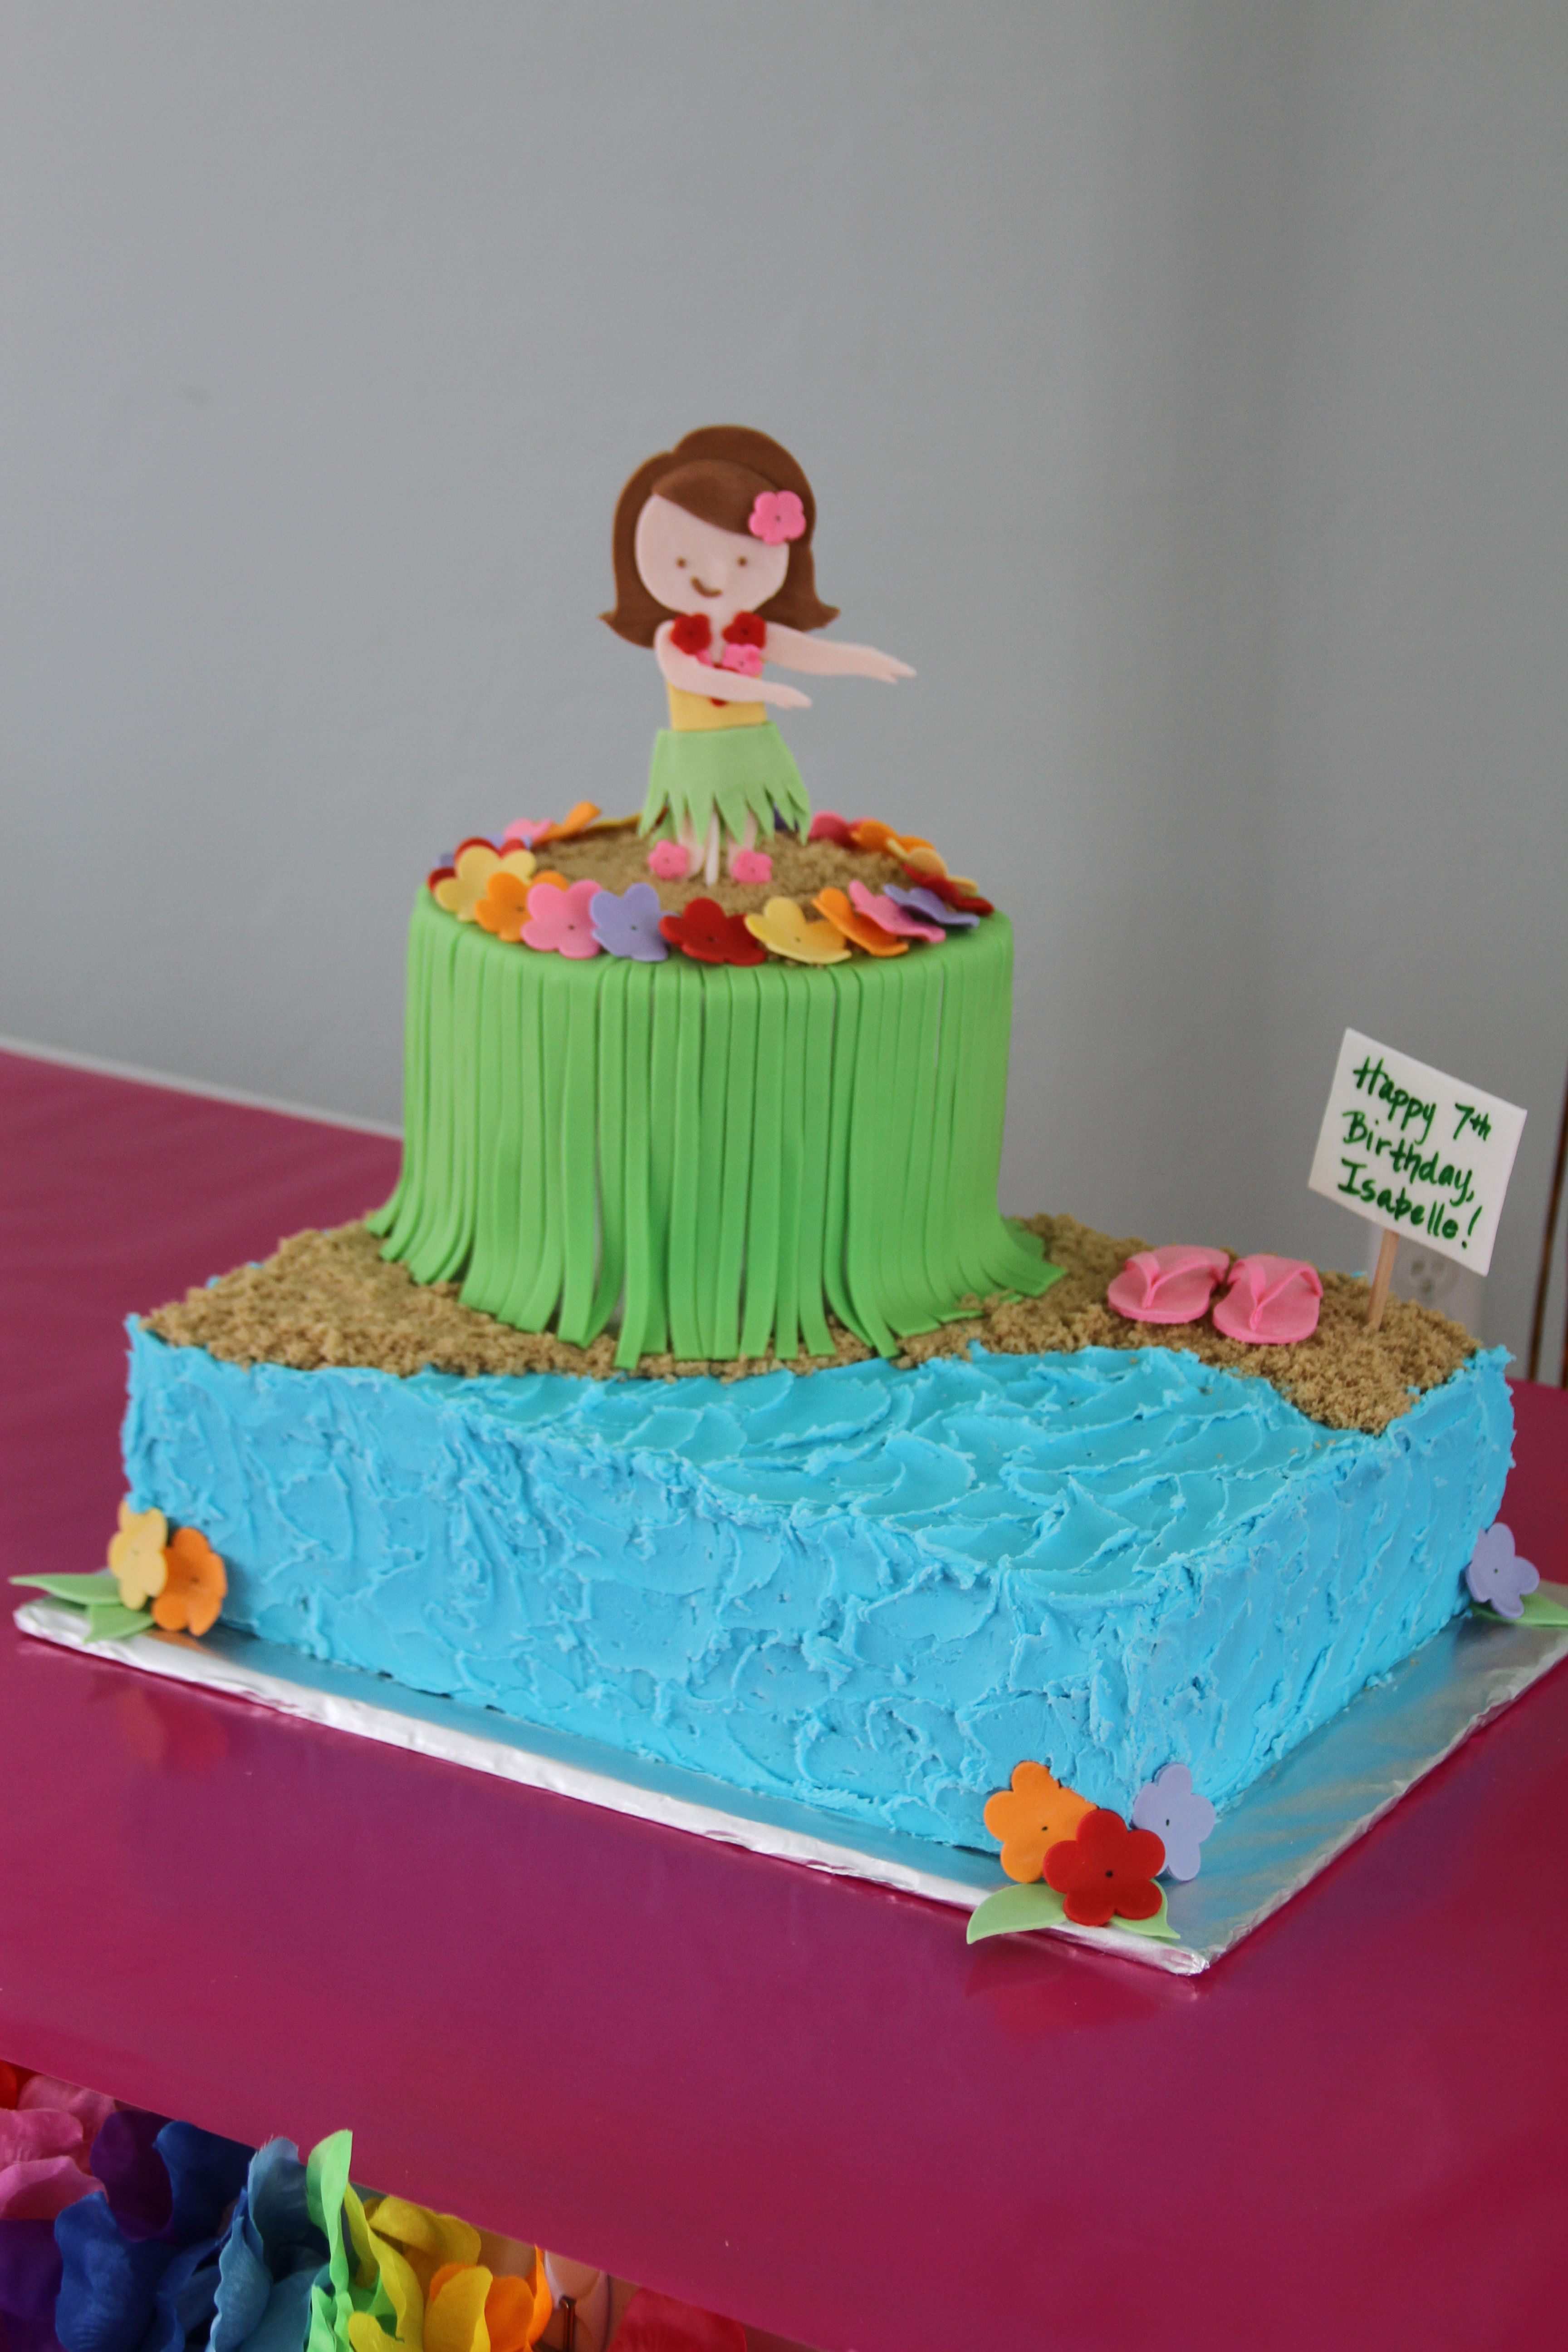 Luau Birthday Cakes Luau Birthday Cake I Like This One Better Too Cute Luau